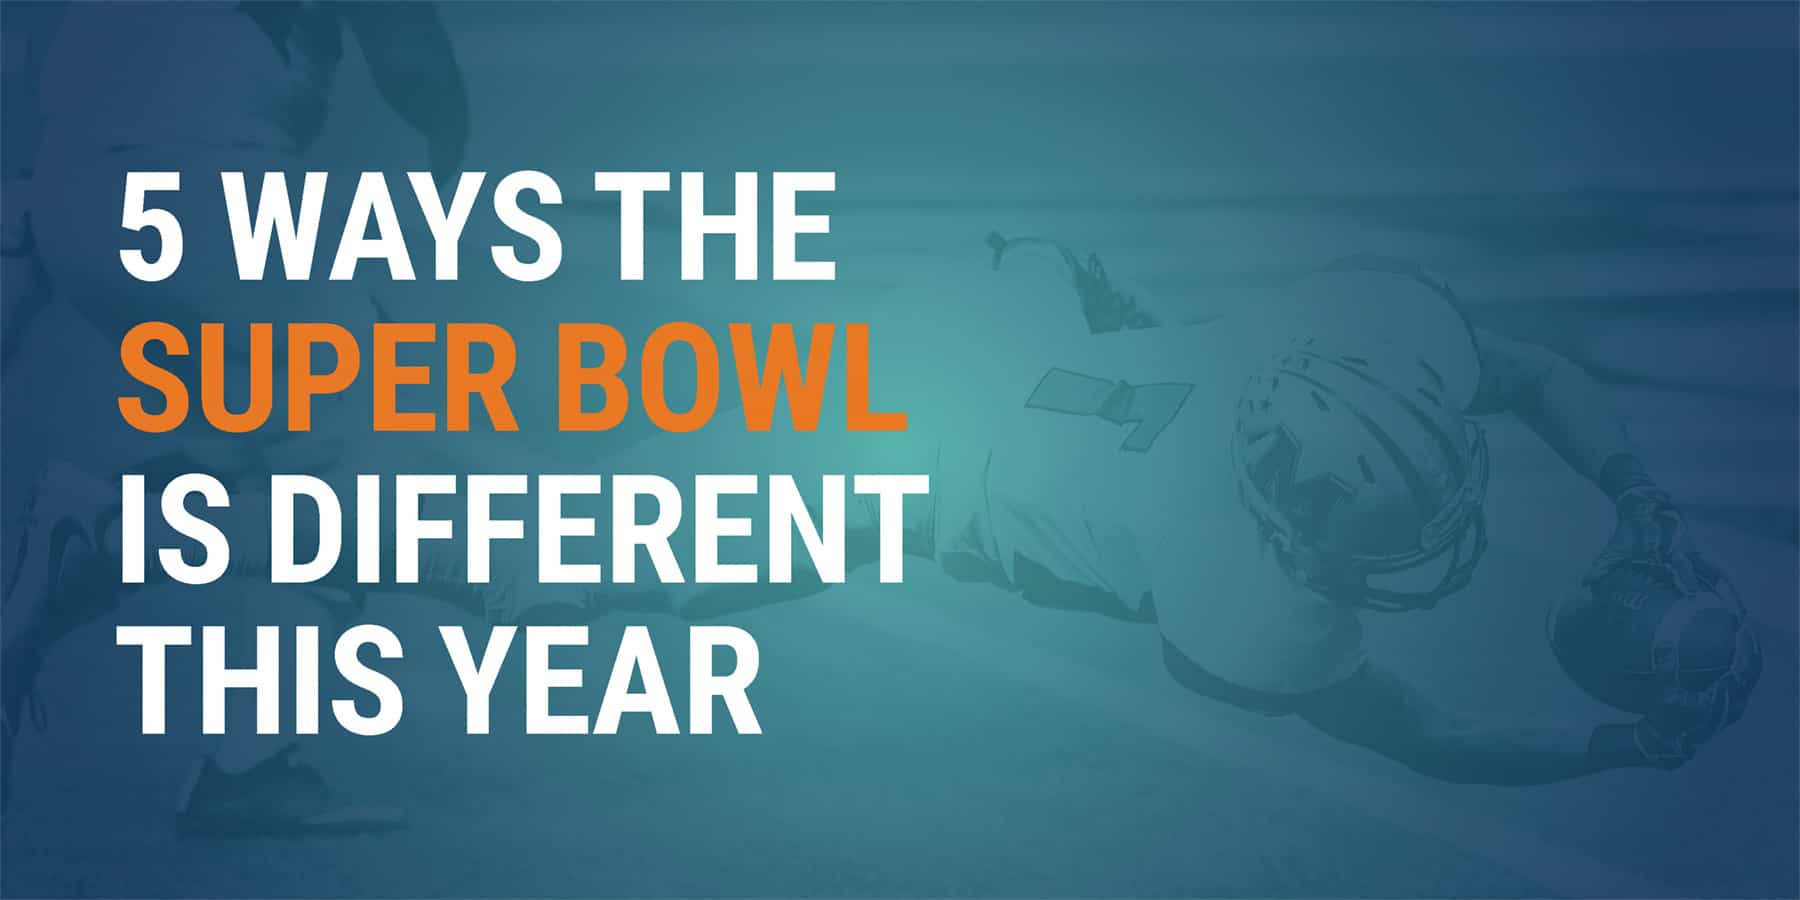 5 ways the Super Bowl is different this year